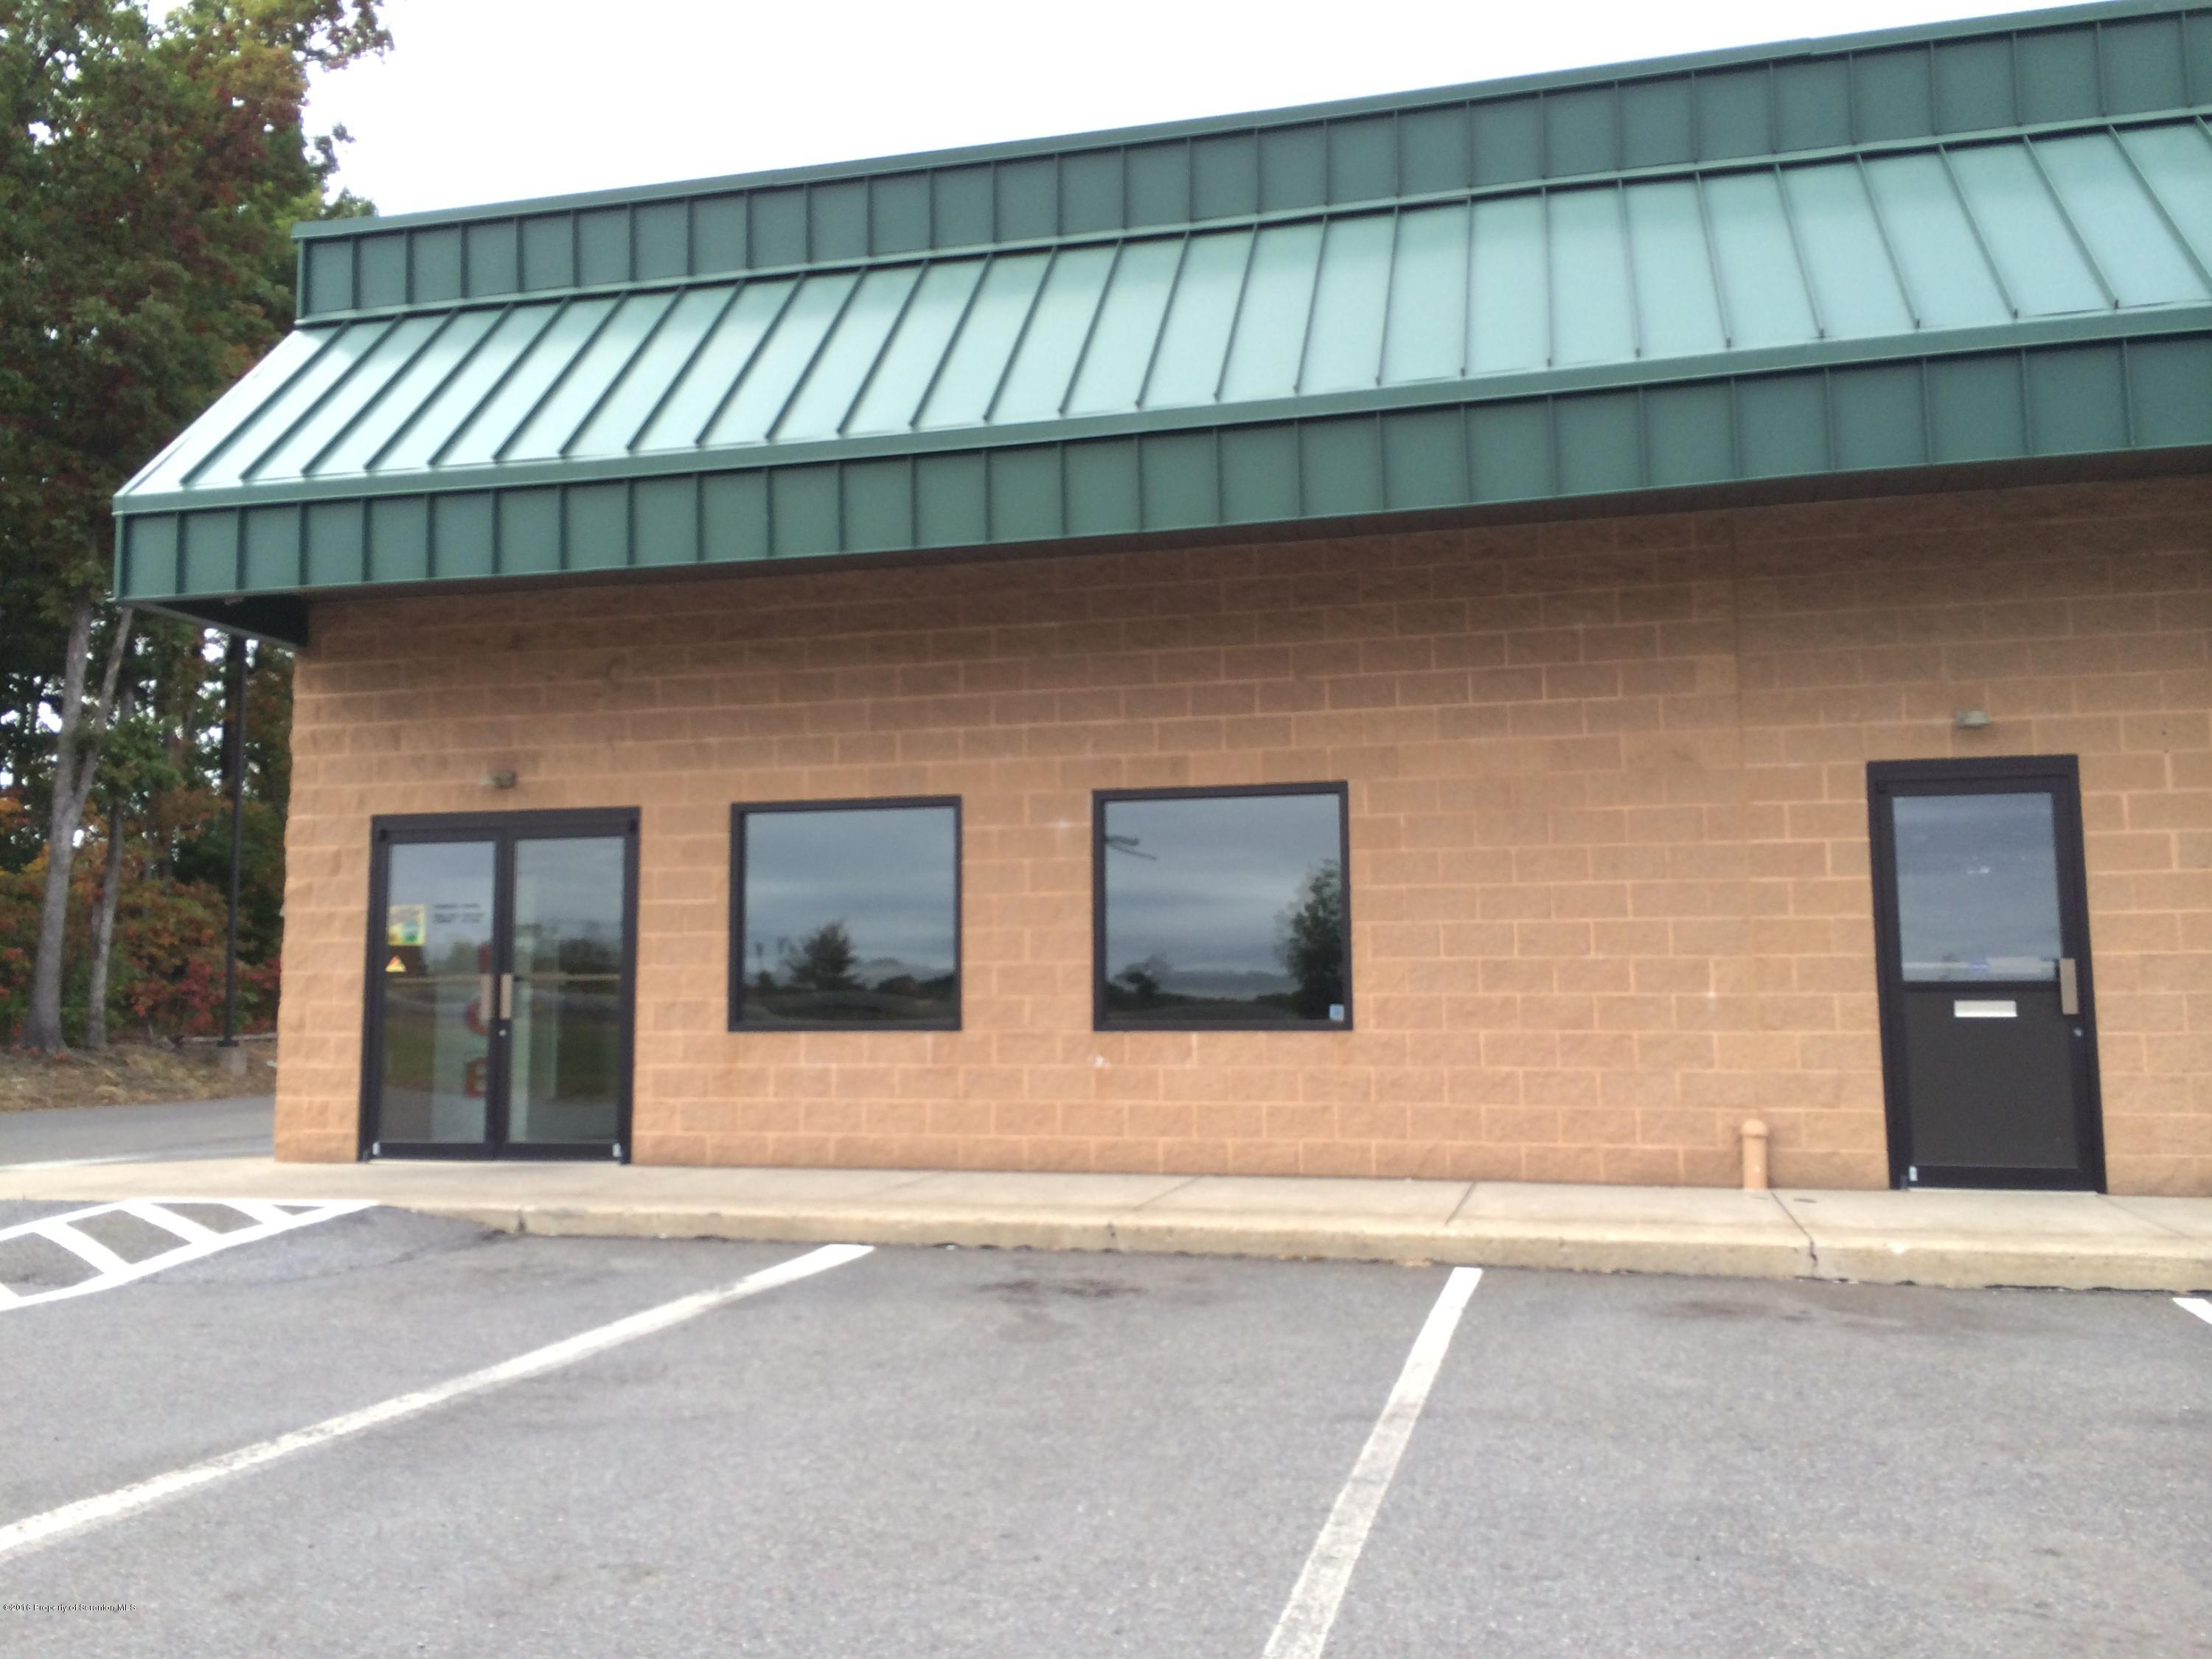 196 AIRPORT RD, Hazleton, Pennsylvania 18202, ,1 BathroomBathrooms,Commercial,For Lease,AIRPORT,20-1148